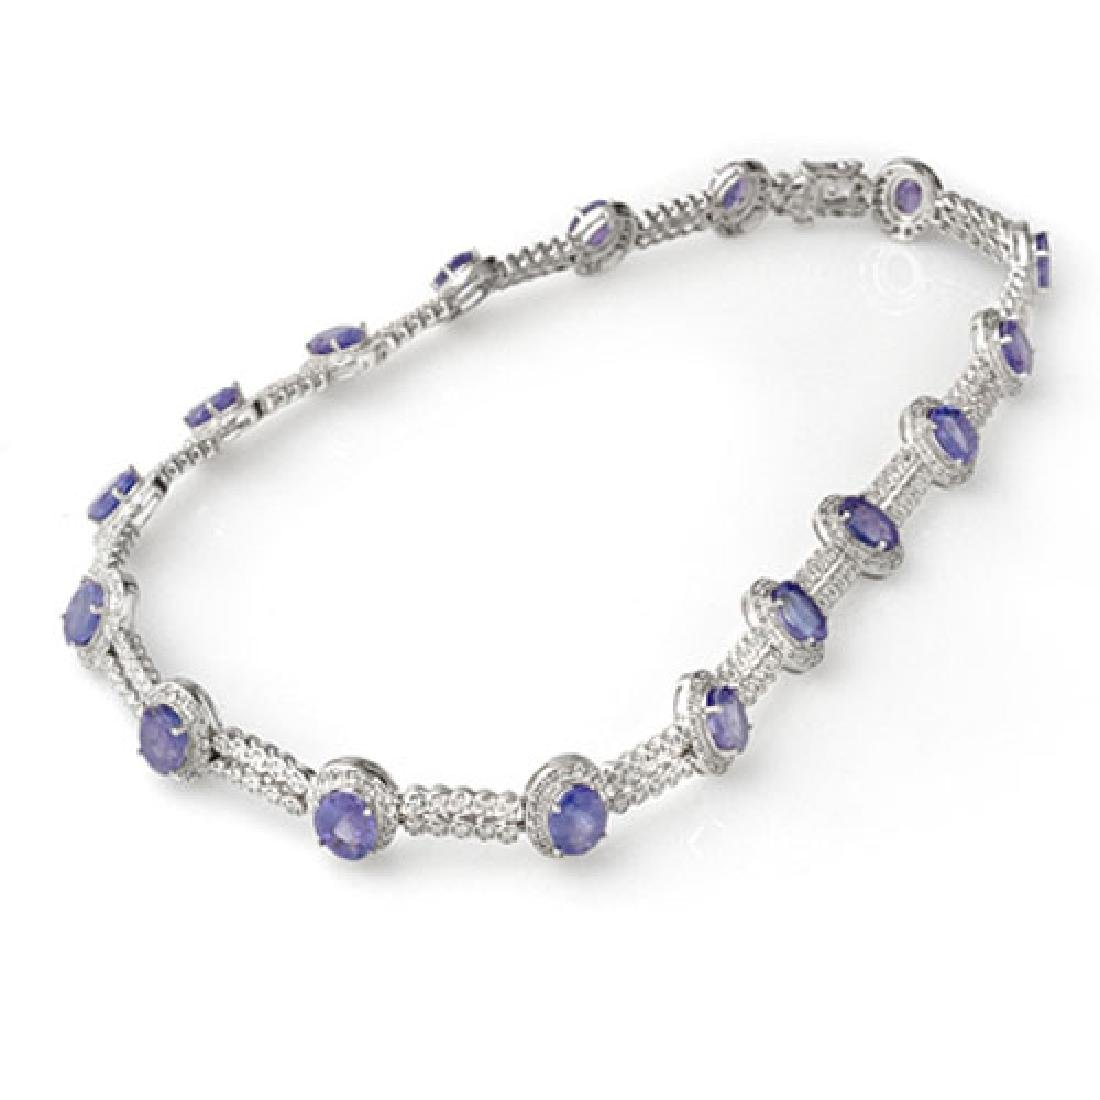 45.0 CTW Tanzanite & Diamond Necklace 14K White Gold